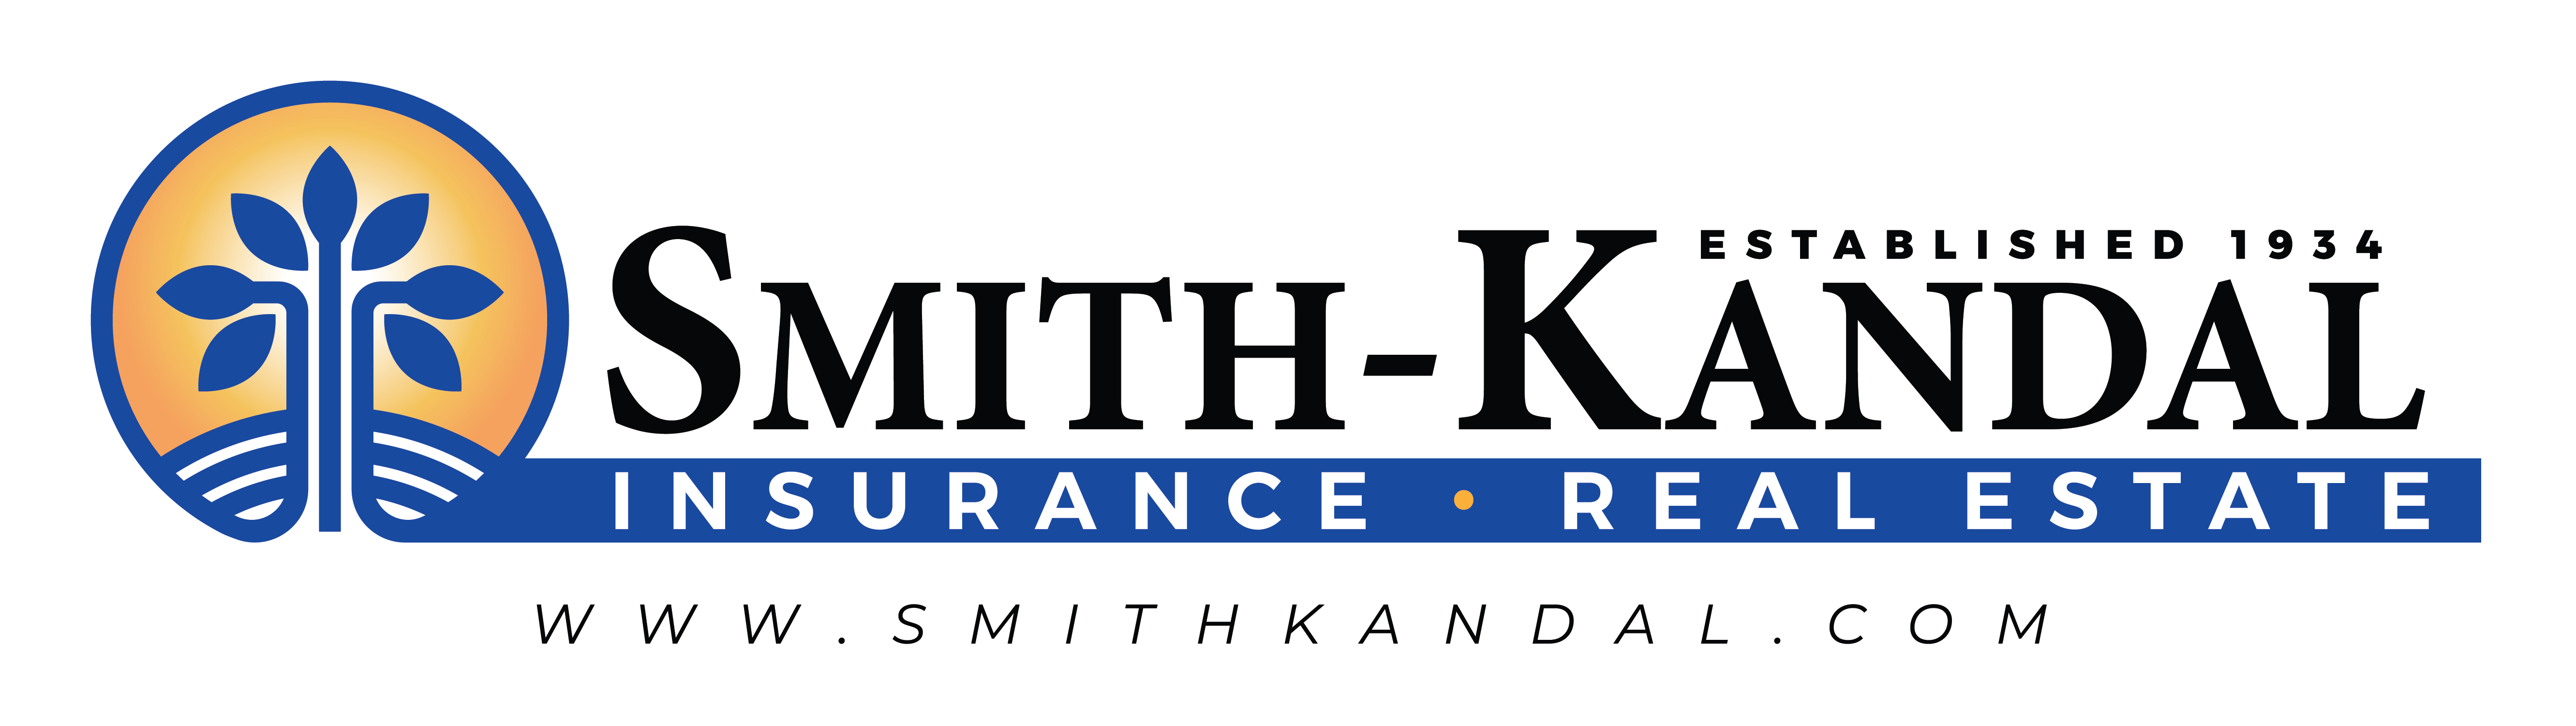 Smith-Kandal-Logo_New.png